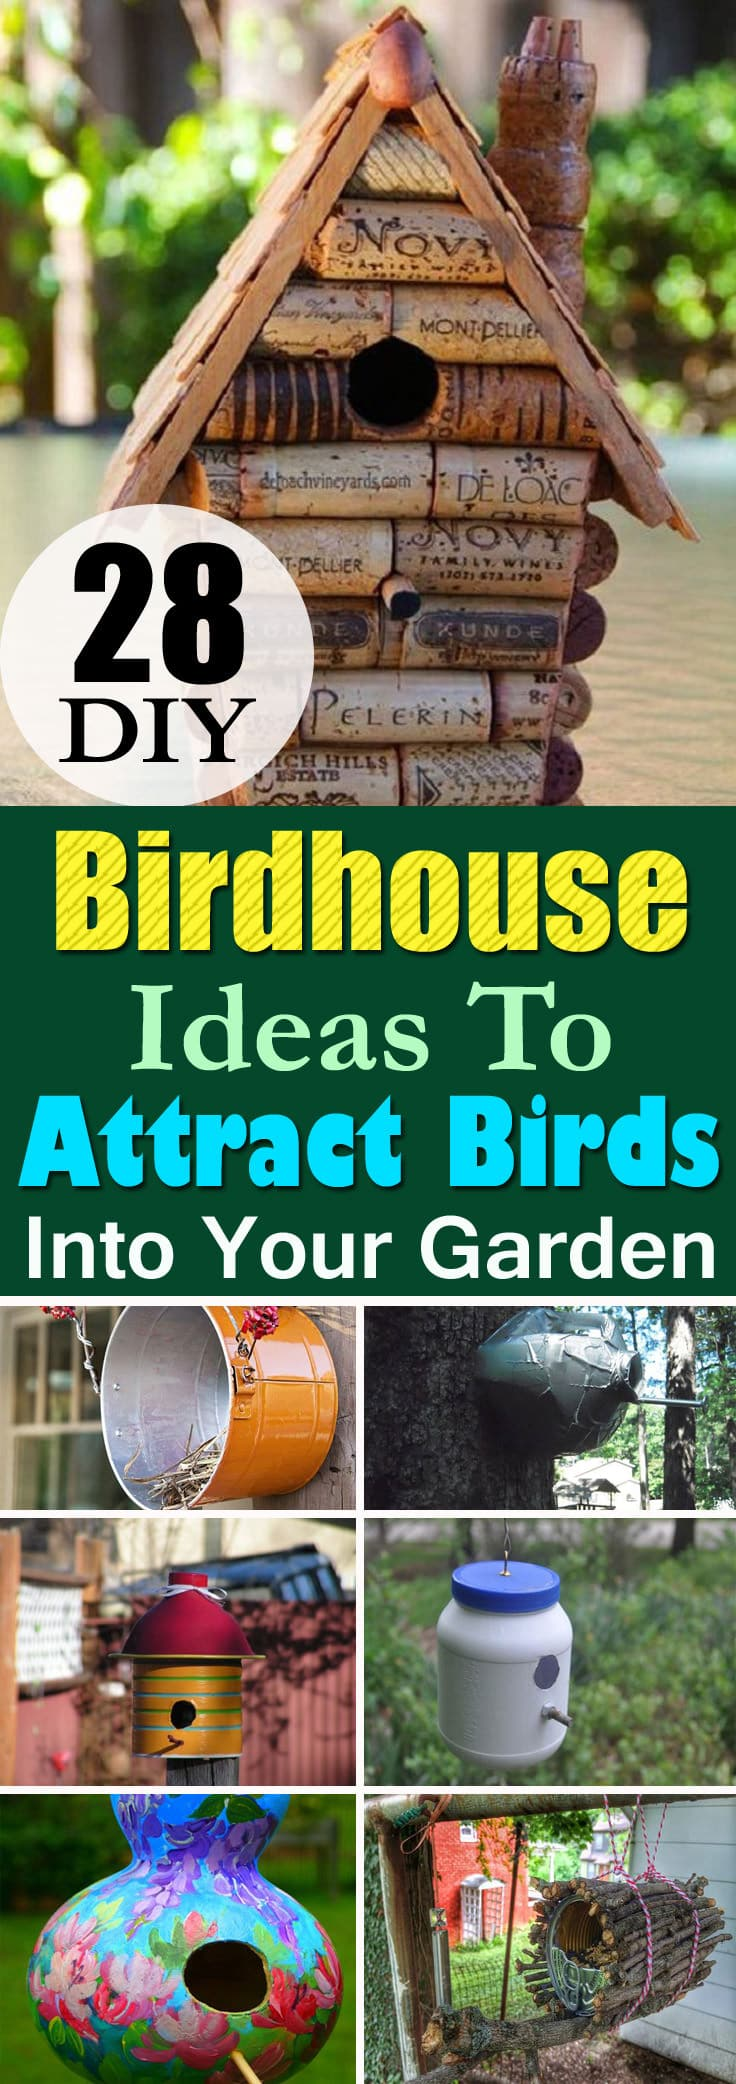 Attract birds in your garden or apartment balcony by providing them shelter. Here're the 28 Best DIY Birdhouse Ideas with tutorials!